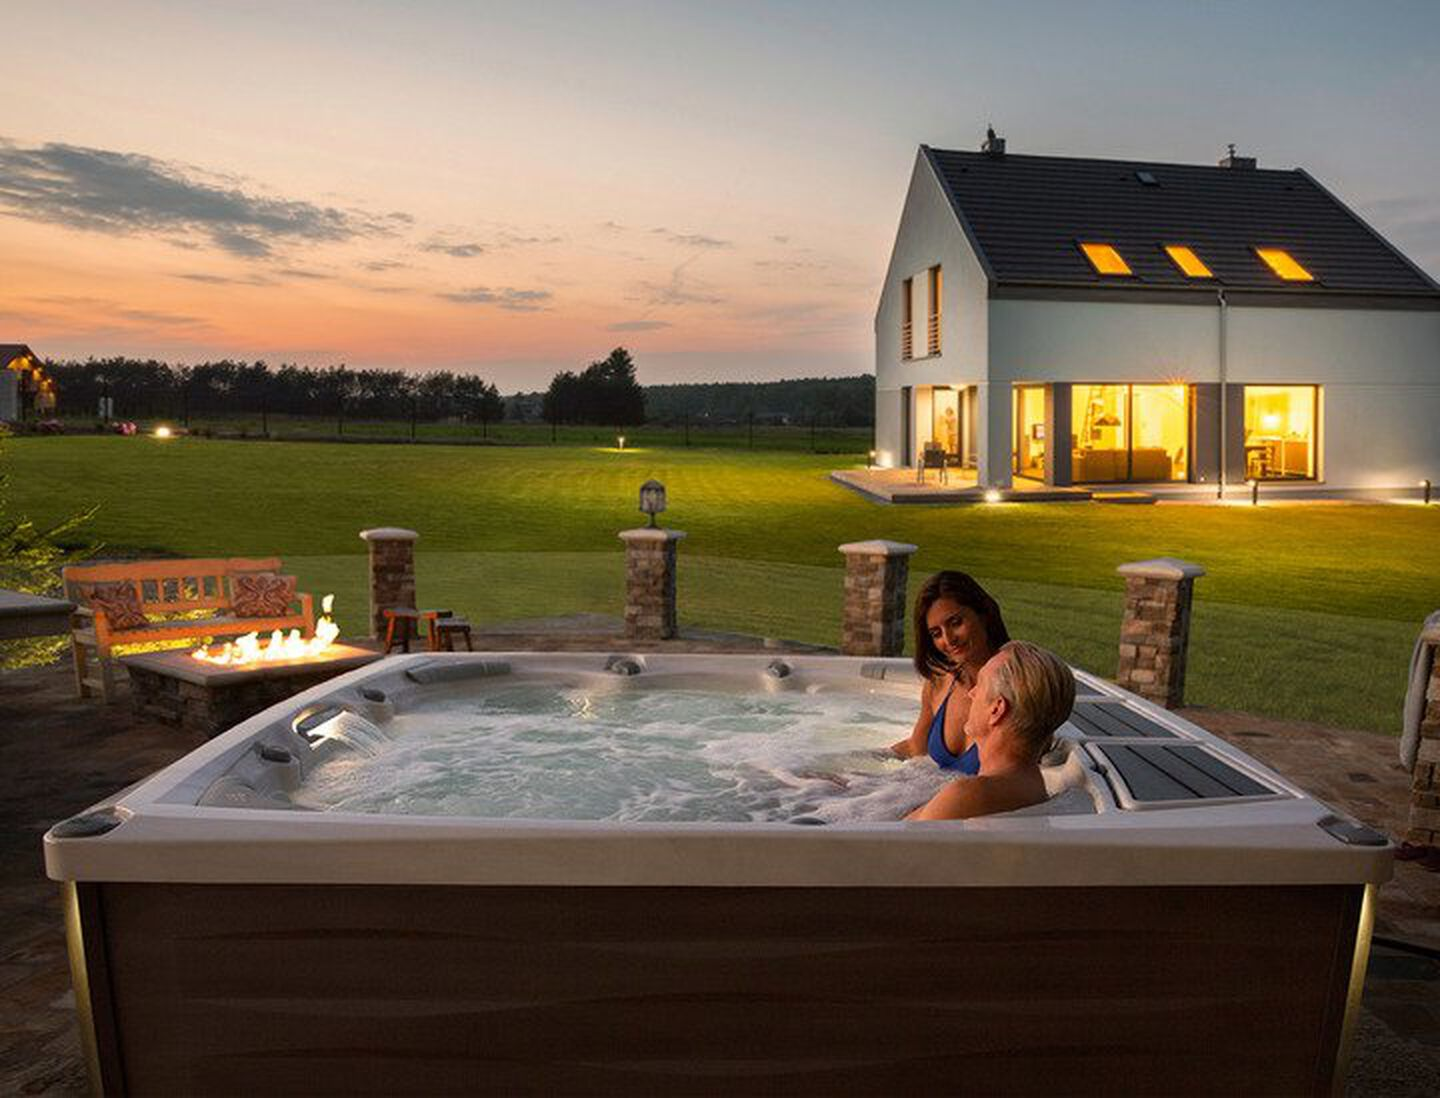 Couple in hot tub at sunset